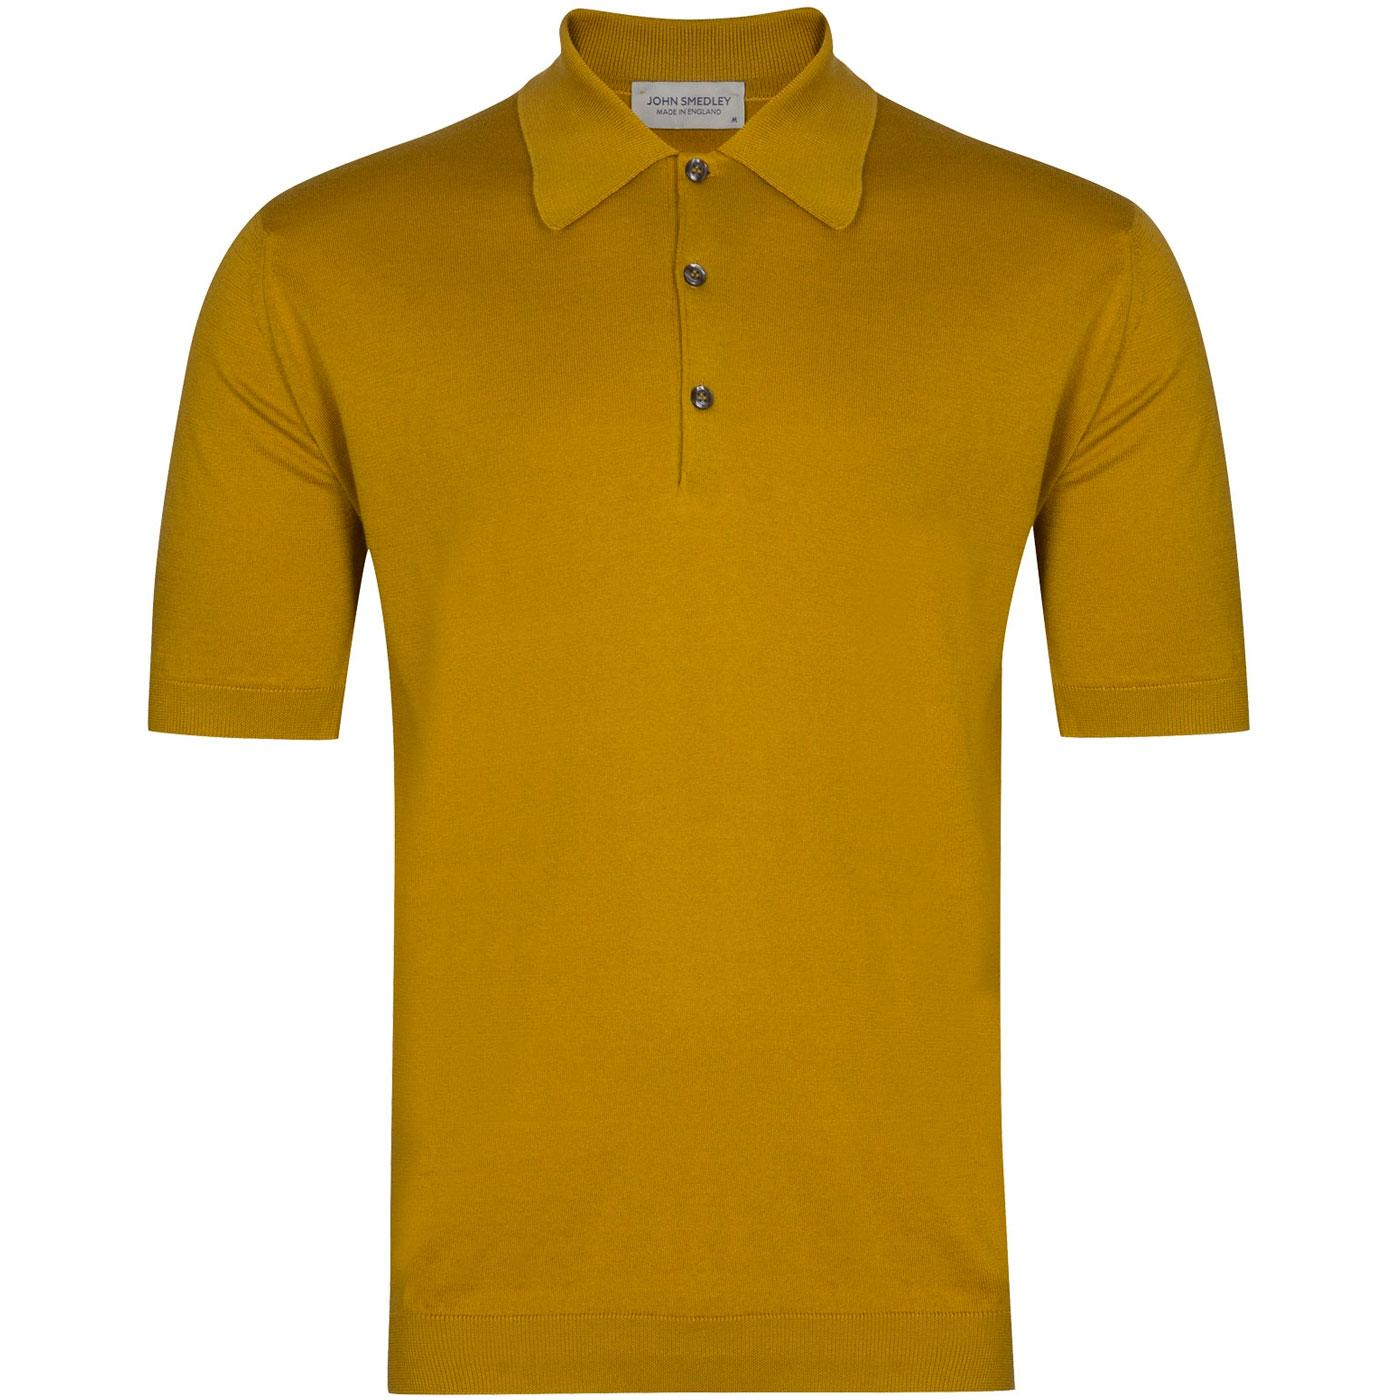 Isis JOHN SMEDLEY Made in England Polo Top YELLOW